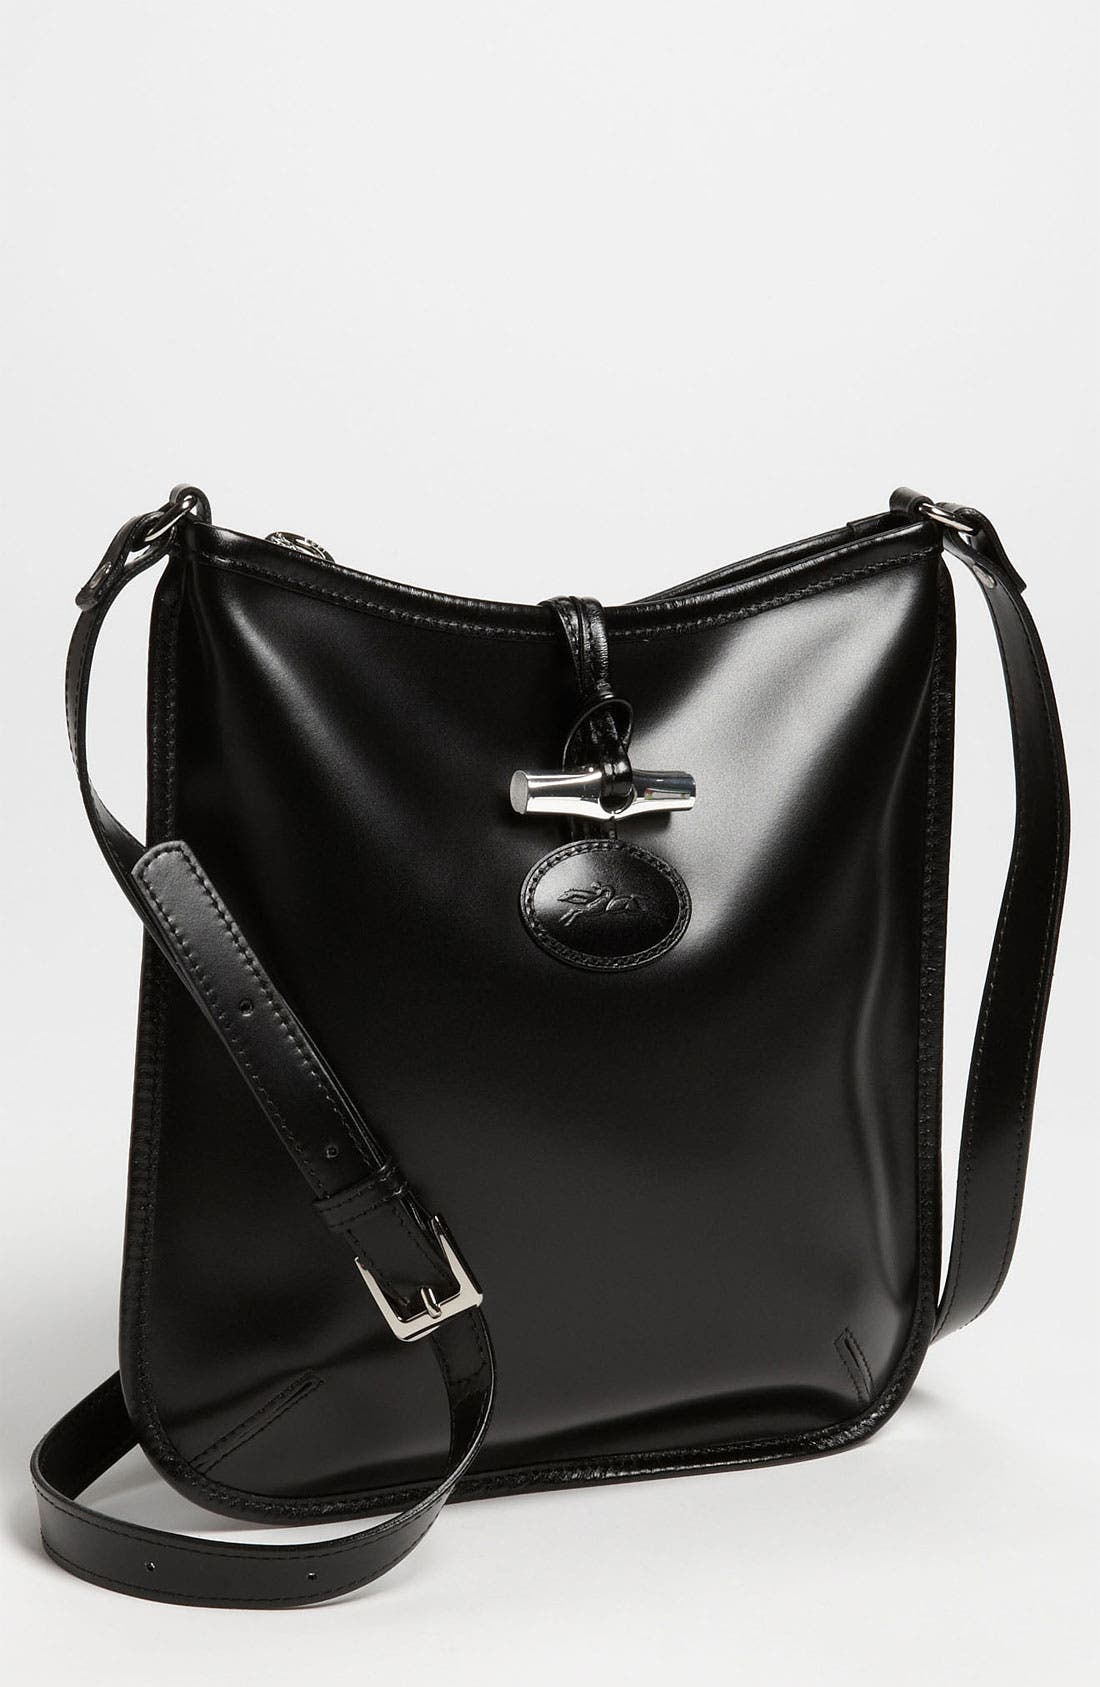 Alternate Image 1 Selected - Longchamp 'LM Jacquard' Crossbody Bag